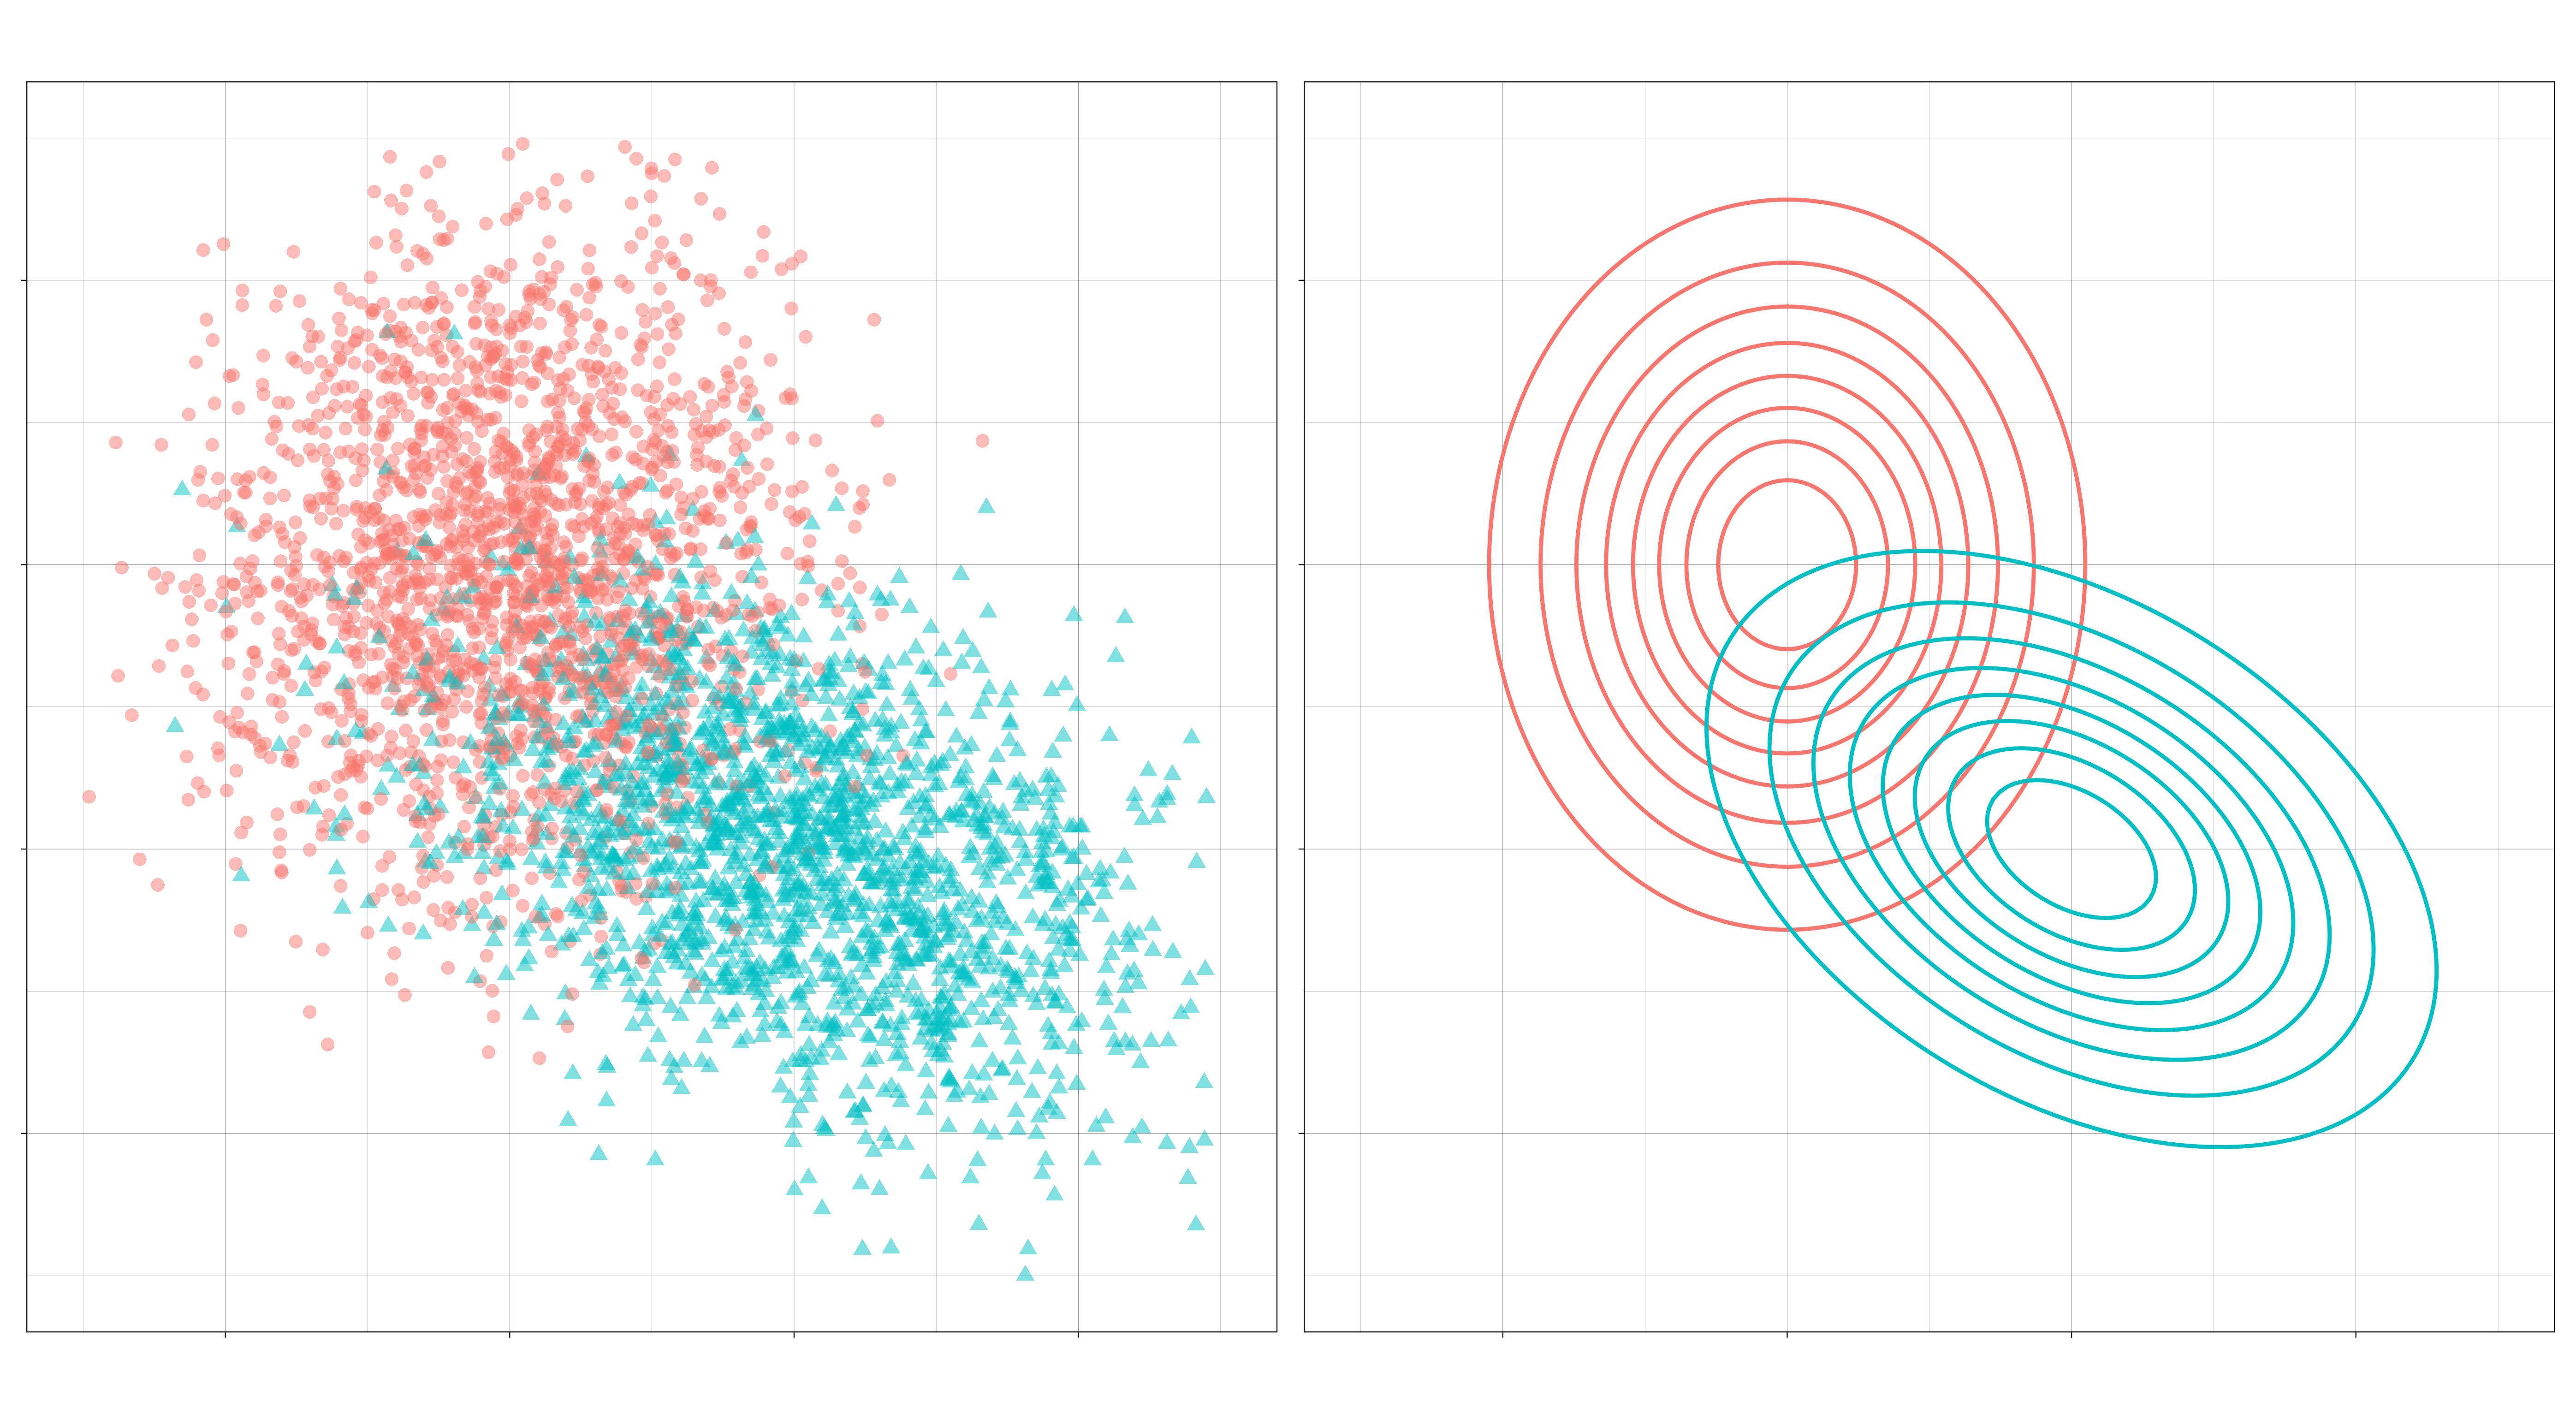 Left: A sample from the feature distributions for the two-class case. Right: Their densities.